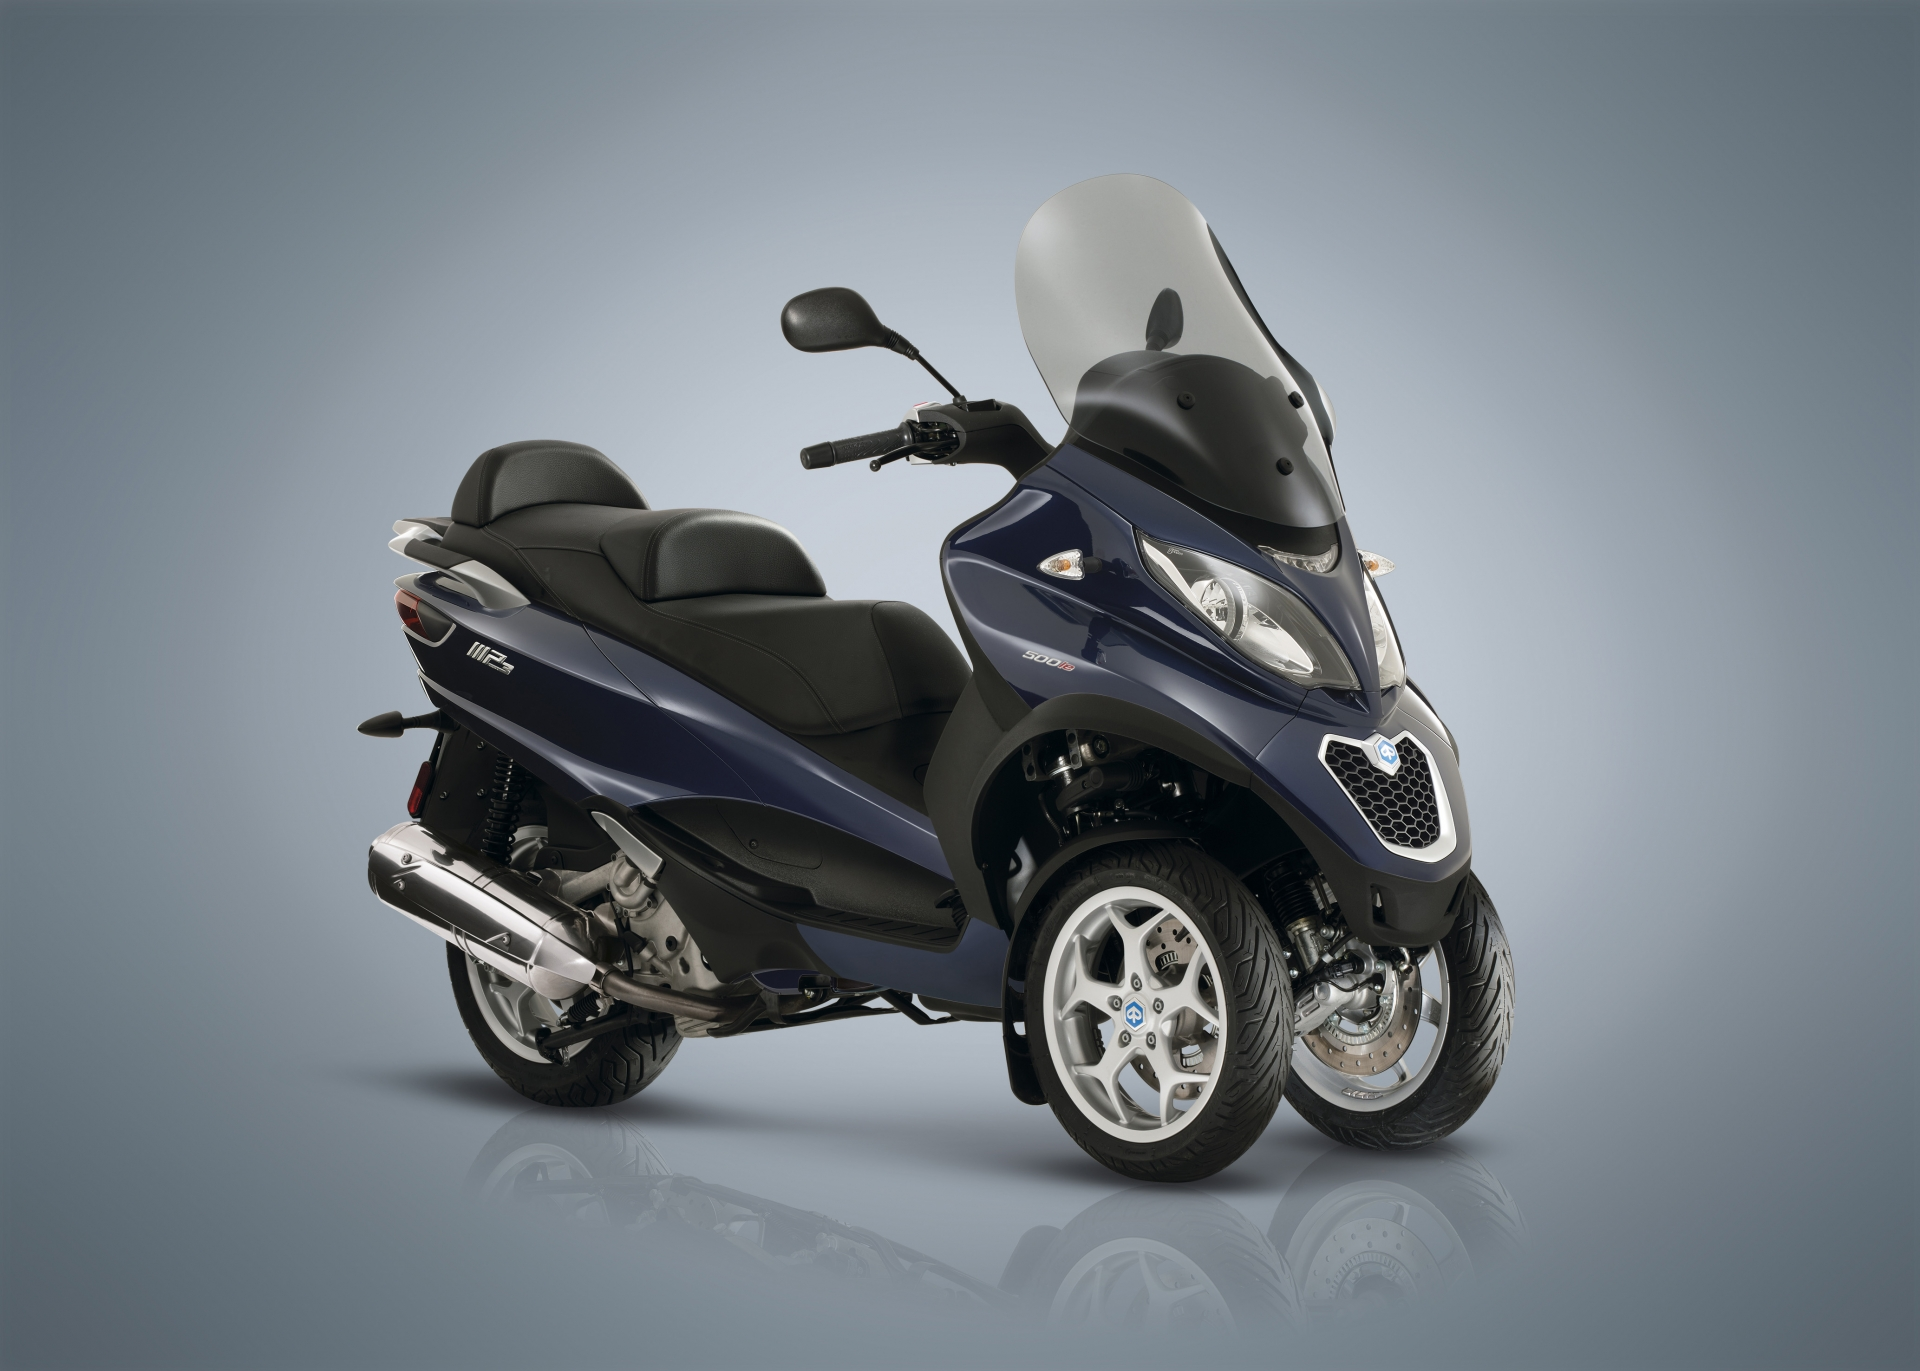 Piaggio MP3 500 LT Business ABS/ASR Blue